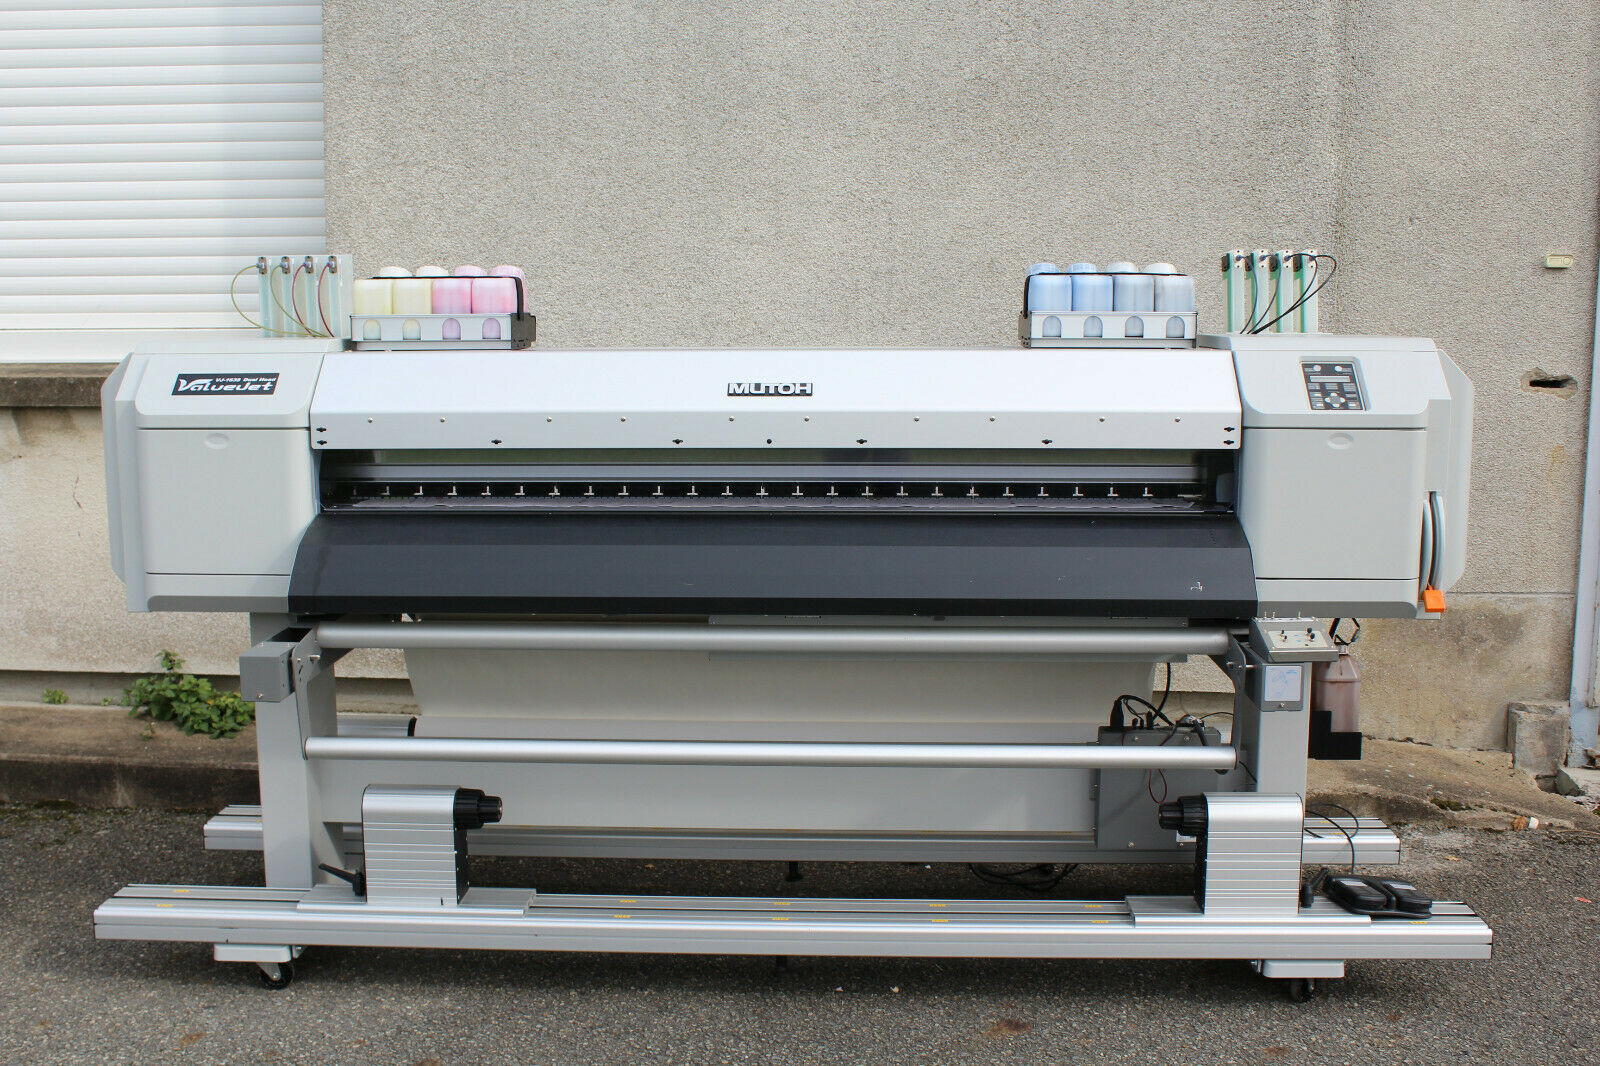 Mutoh valuejet vj-1638w imprimante grand format - traceur - printer - vj1638